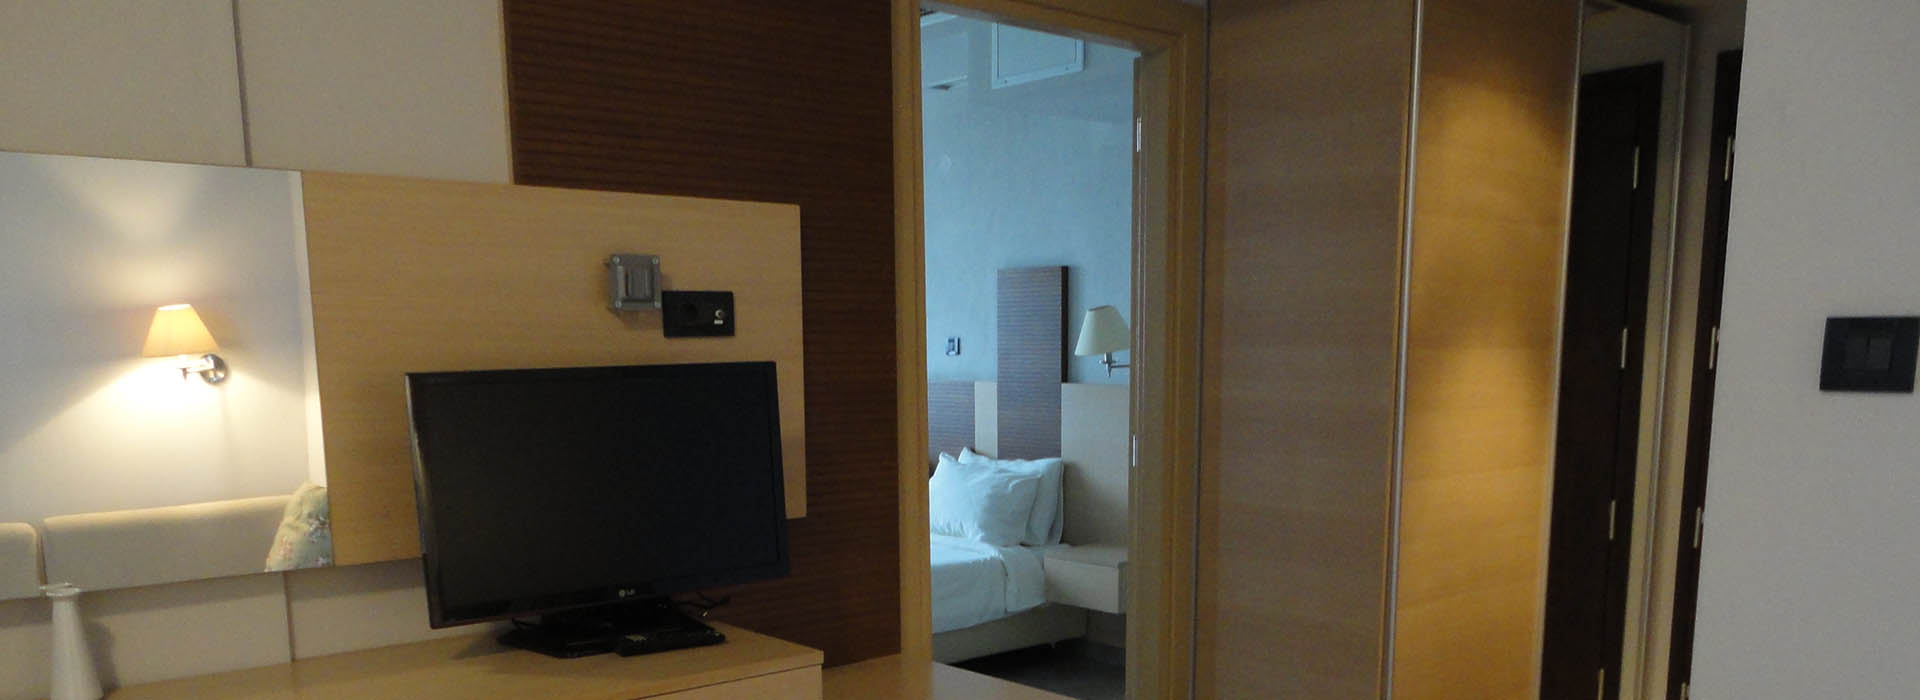 Rooms__Suites_5_copy